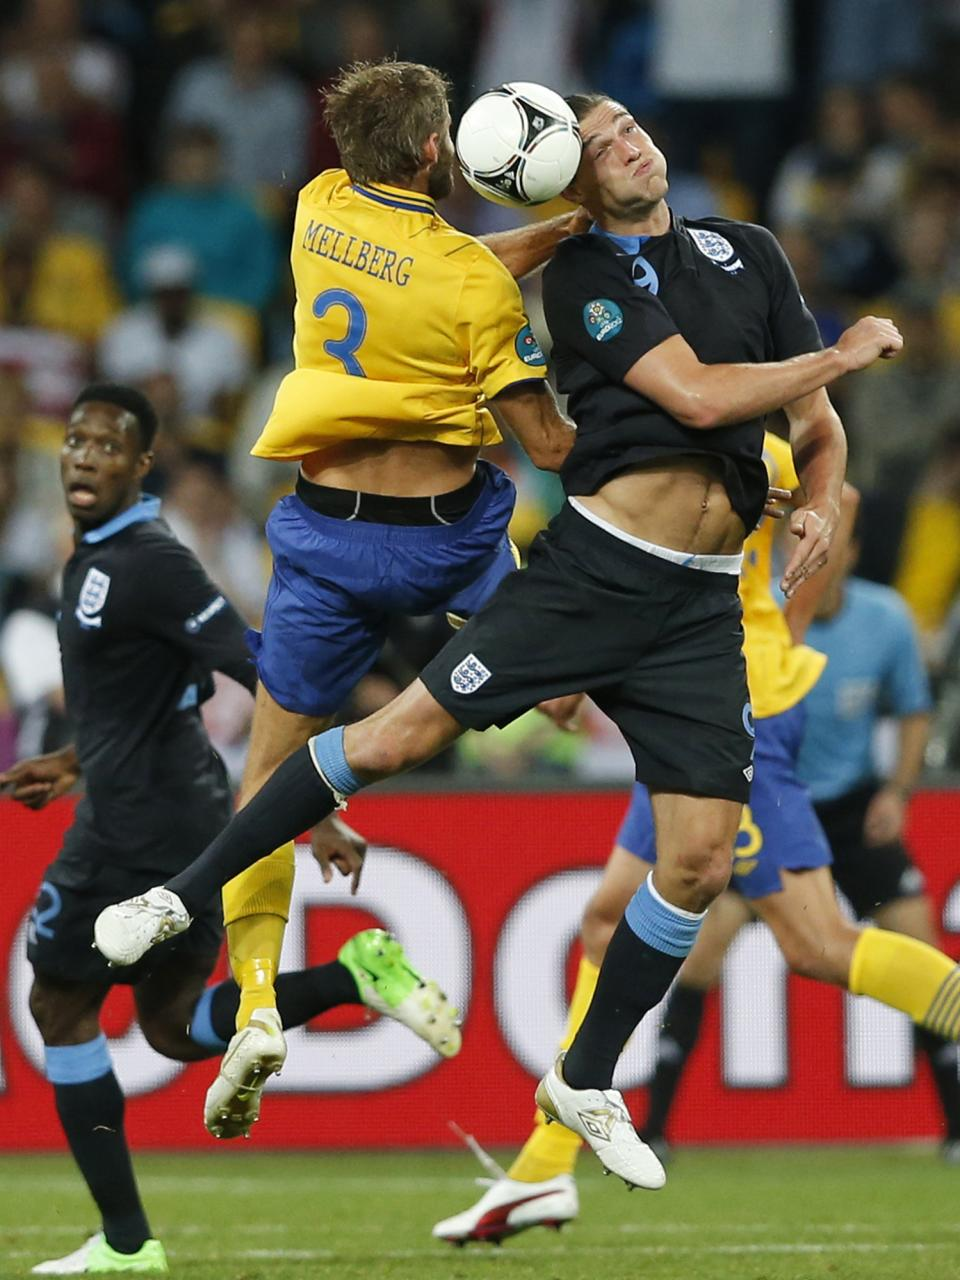 Sweden's Olof Mellberg, left, and England's Andy Carroll jump for the ball during the Euro 2012 soccer championship Group D match between Sweden and England in Kiev, Ukraine, Friday, June 15, 2012. (AP Photo/Sergei Grits)